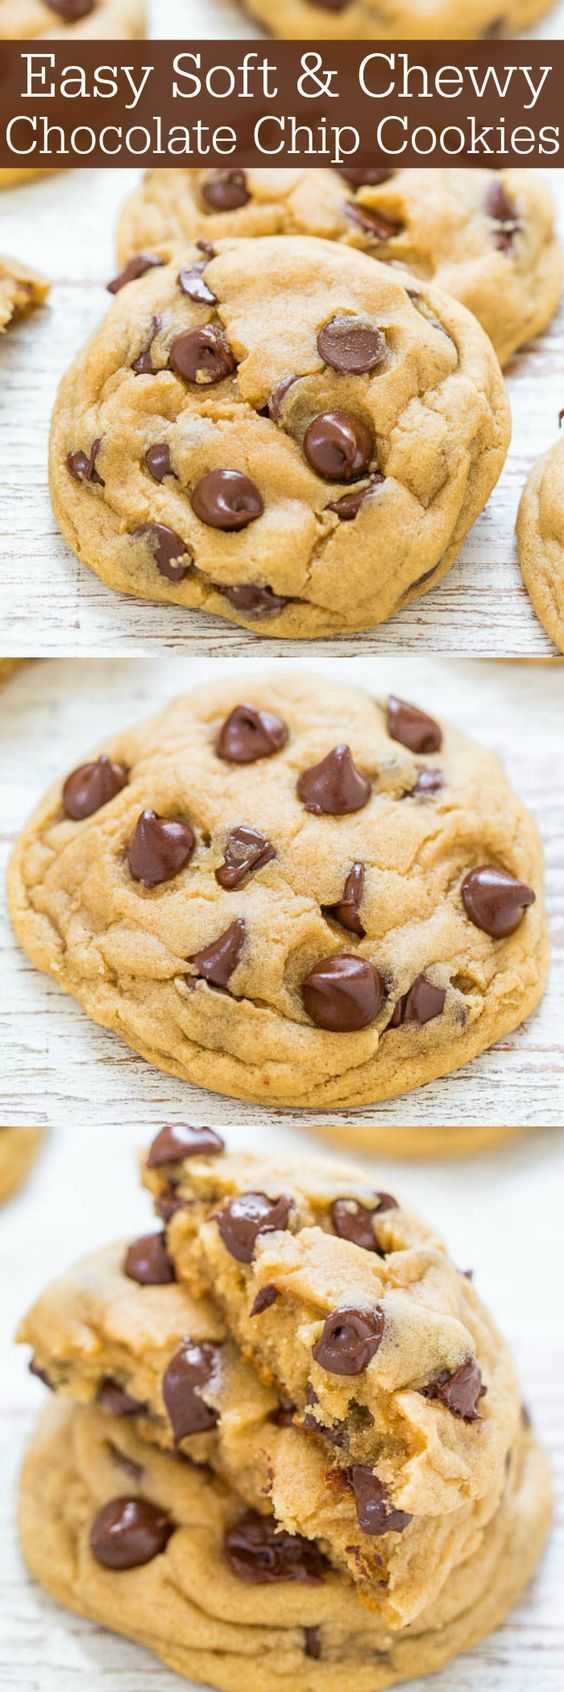 Soft Chocolate Chip Cookies Recipe Chewy chocolate